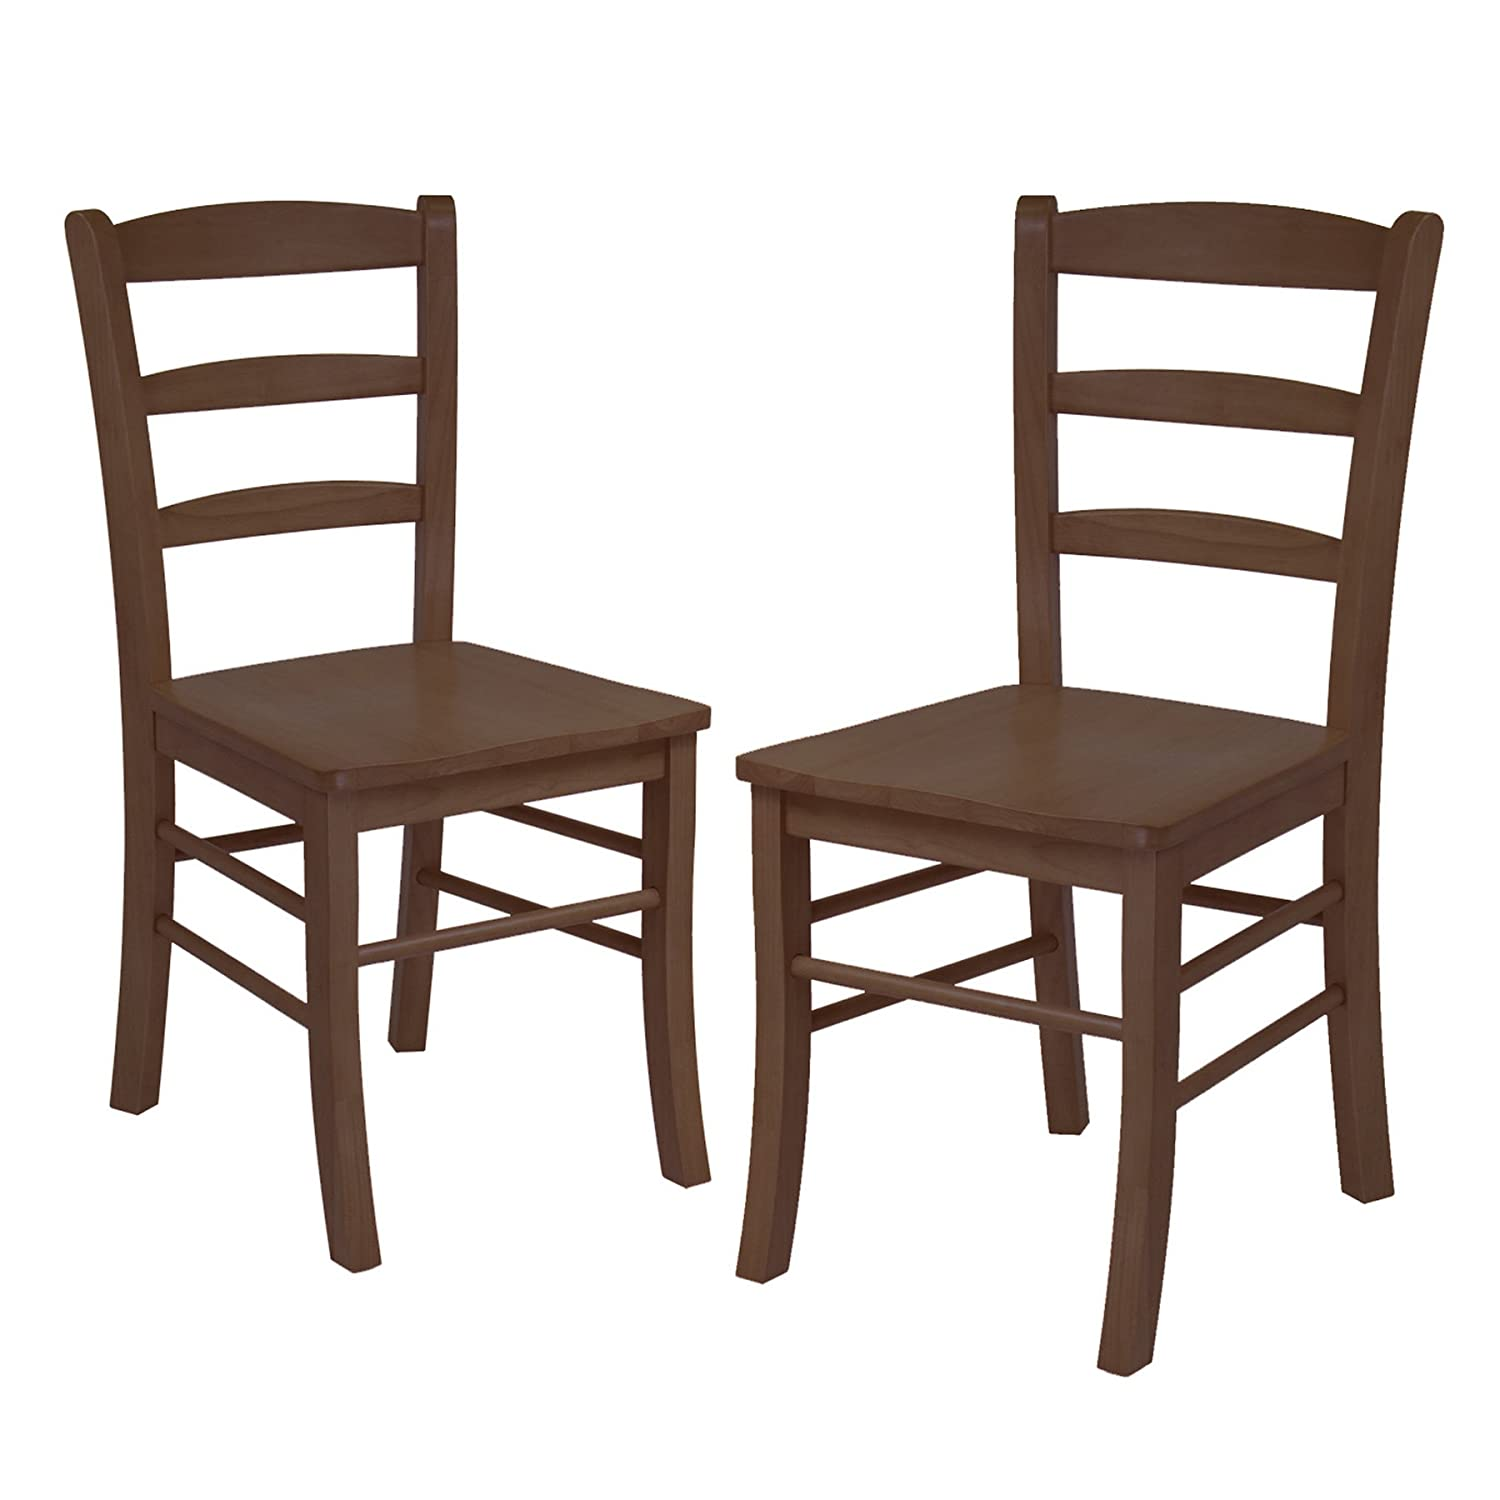 Amazon.com: Winsome Wood Ladder Back Chair, RTA, Antique Walnut, Set of 2:  Kitchen & Dining - Amazon.com: Winsome Wood Ladder Back Chair, RTA, Antique Walnut, Set